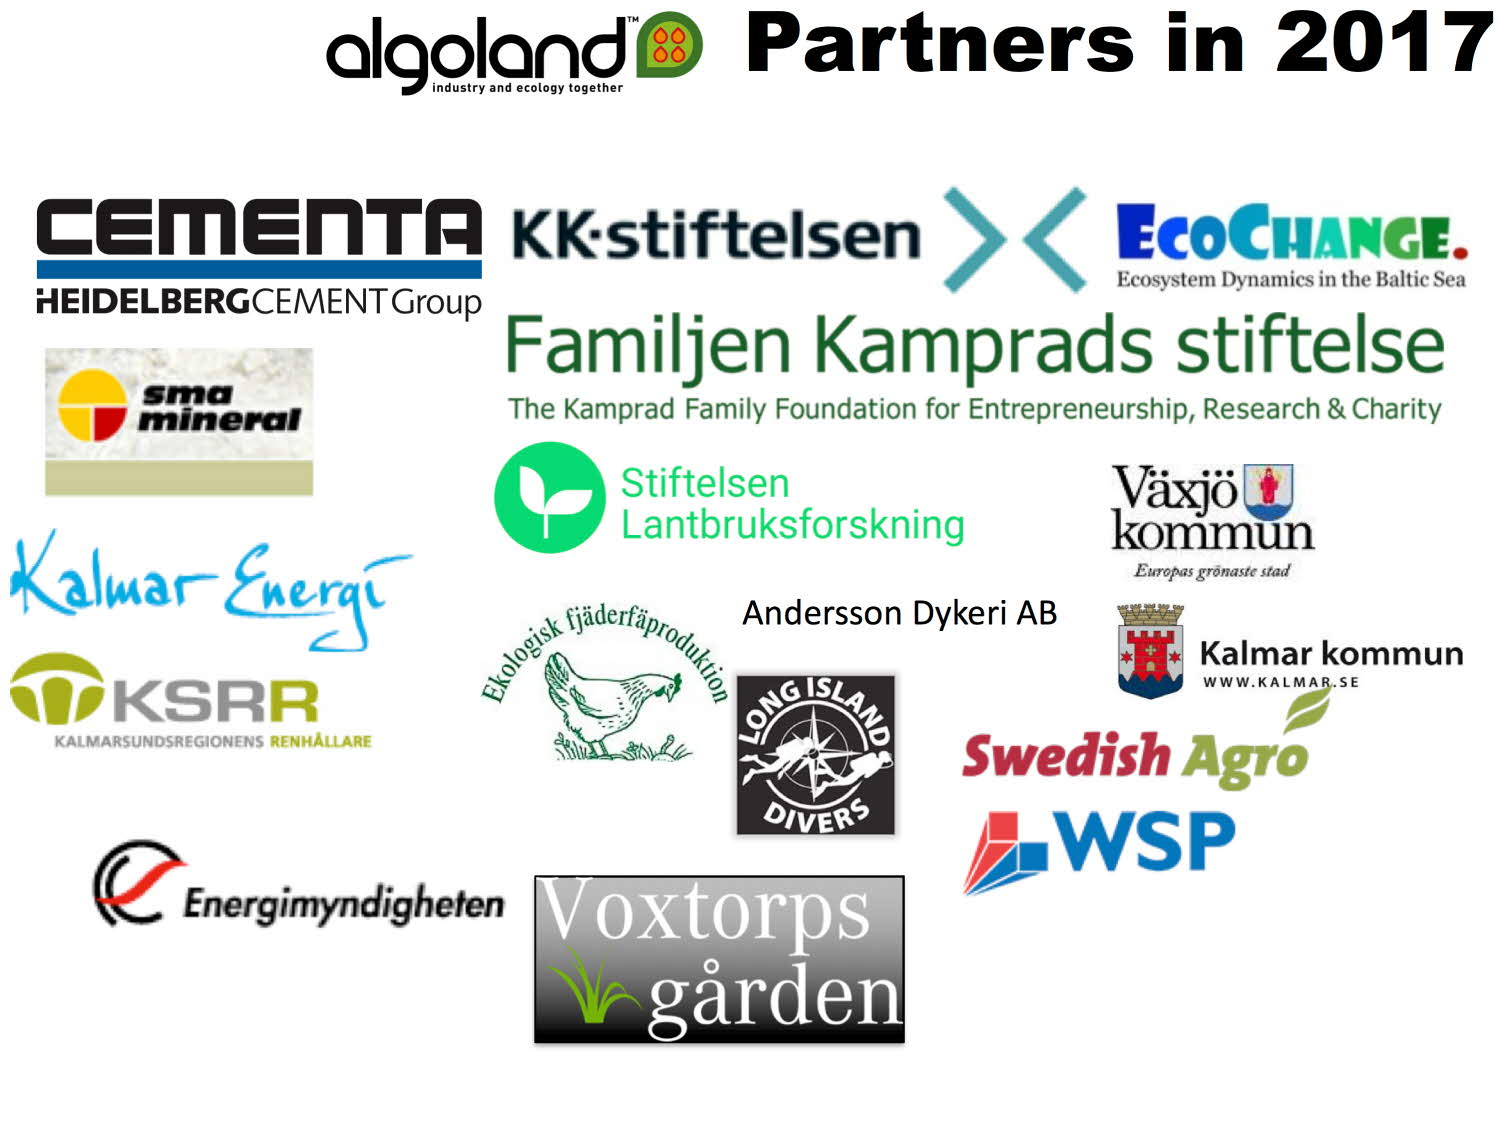 Algoland Team and Partners